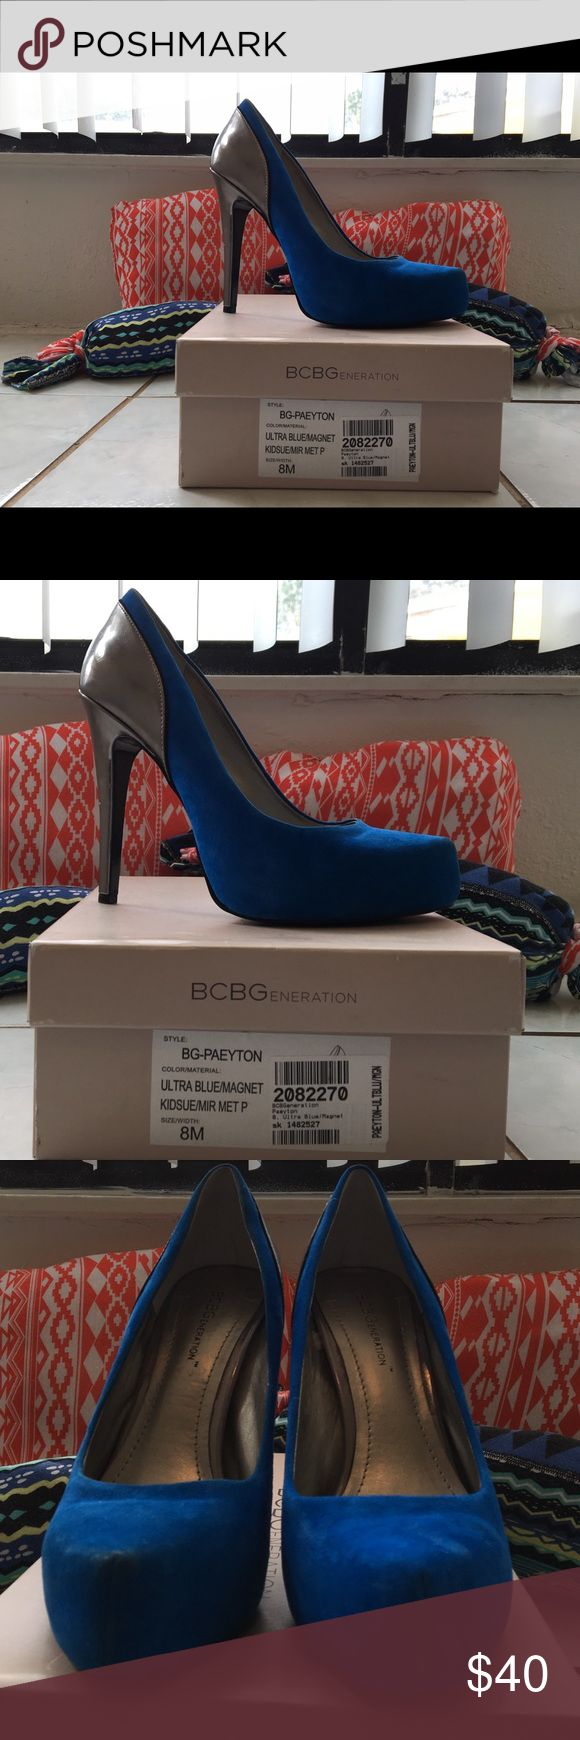 BRAND NEW BCBGeneration Style:BG-PAEYTON Ultra Blue/Magnet Pump  NEVER WORN Selling because my wife can't wear heals anymore due to two knee surgeries. No trades please. Smoke-free and pet-free home. BCBGeneration Shoes Heels